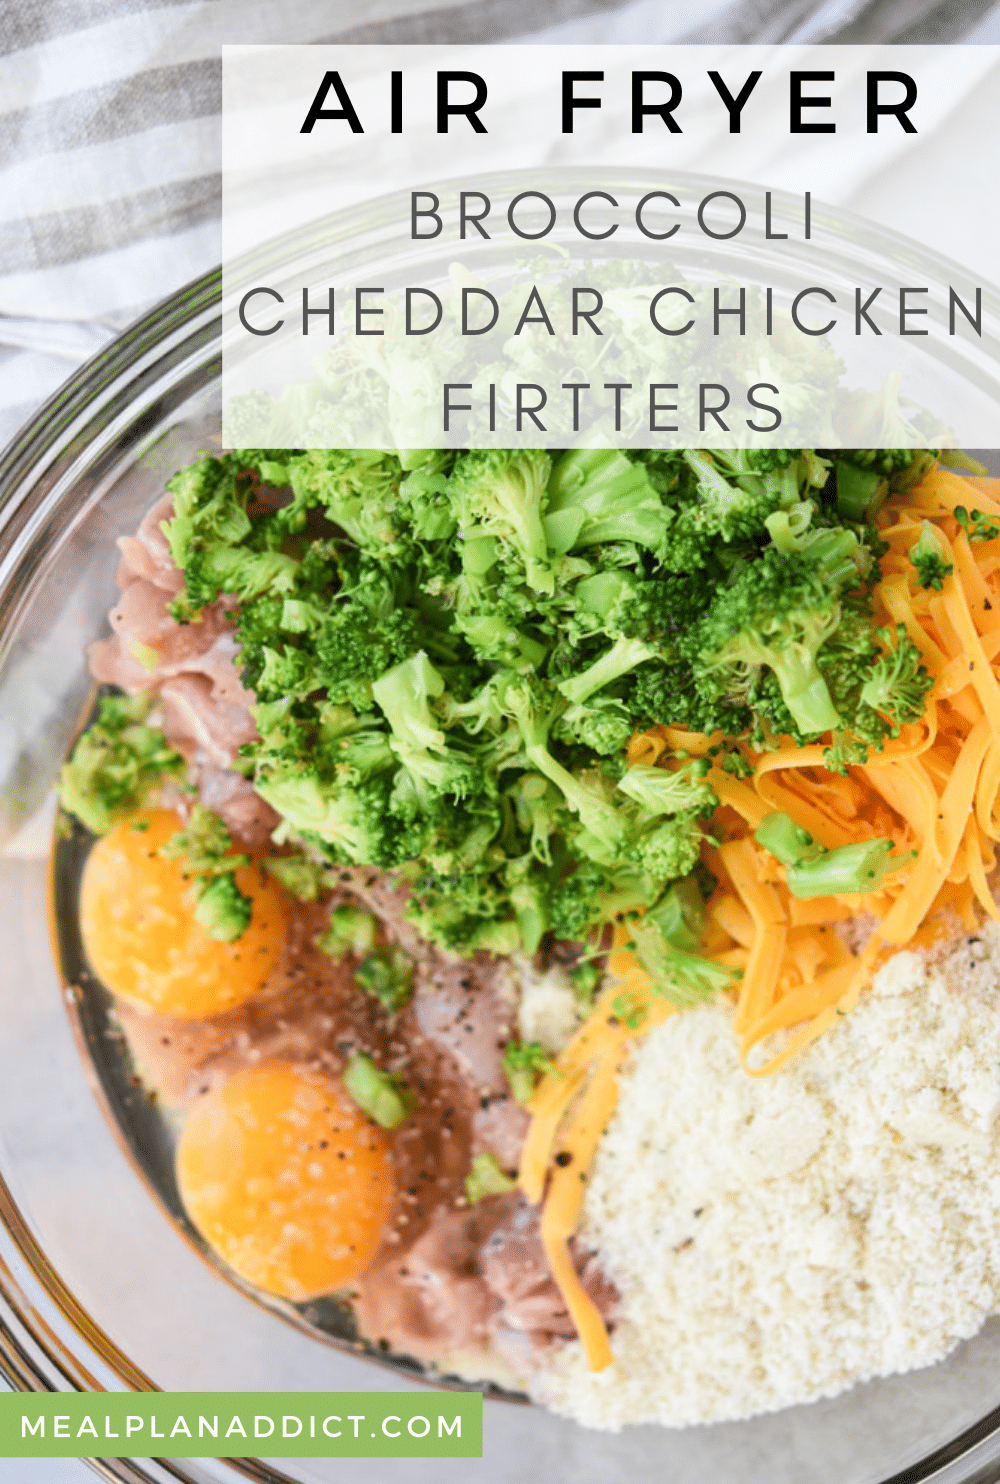 Easy Air Fryer Broccoli Cheddar Chicken Fritters | Meal Plan Addict